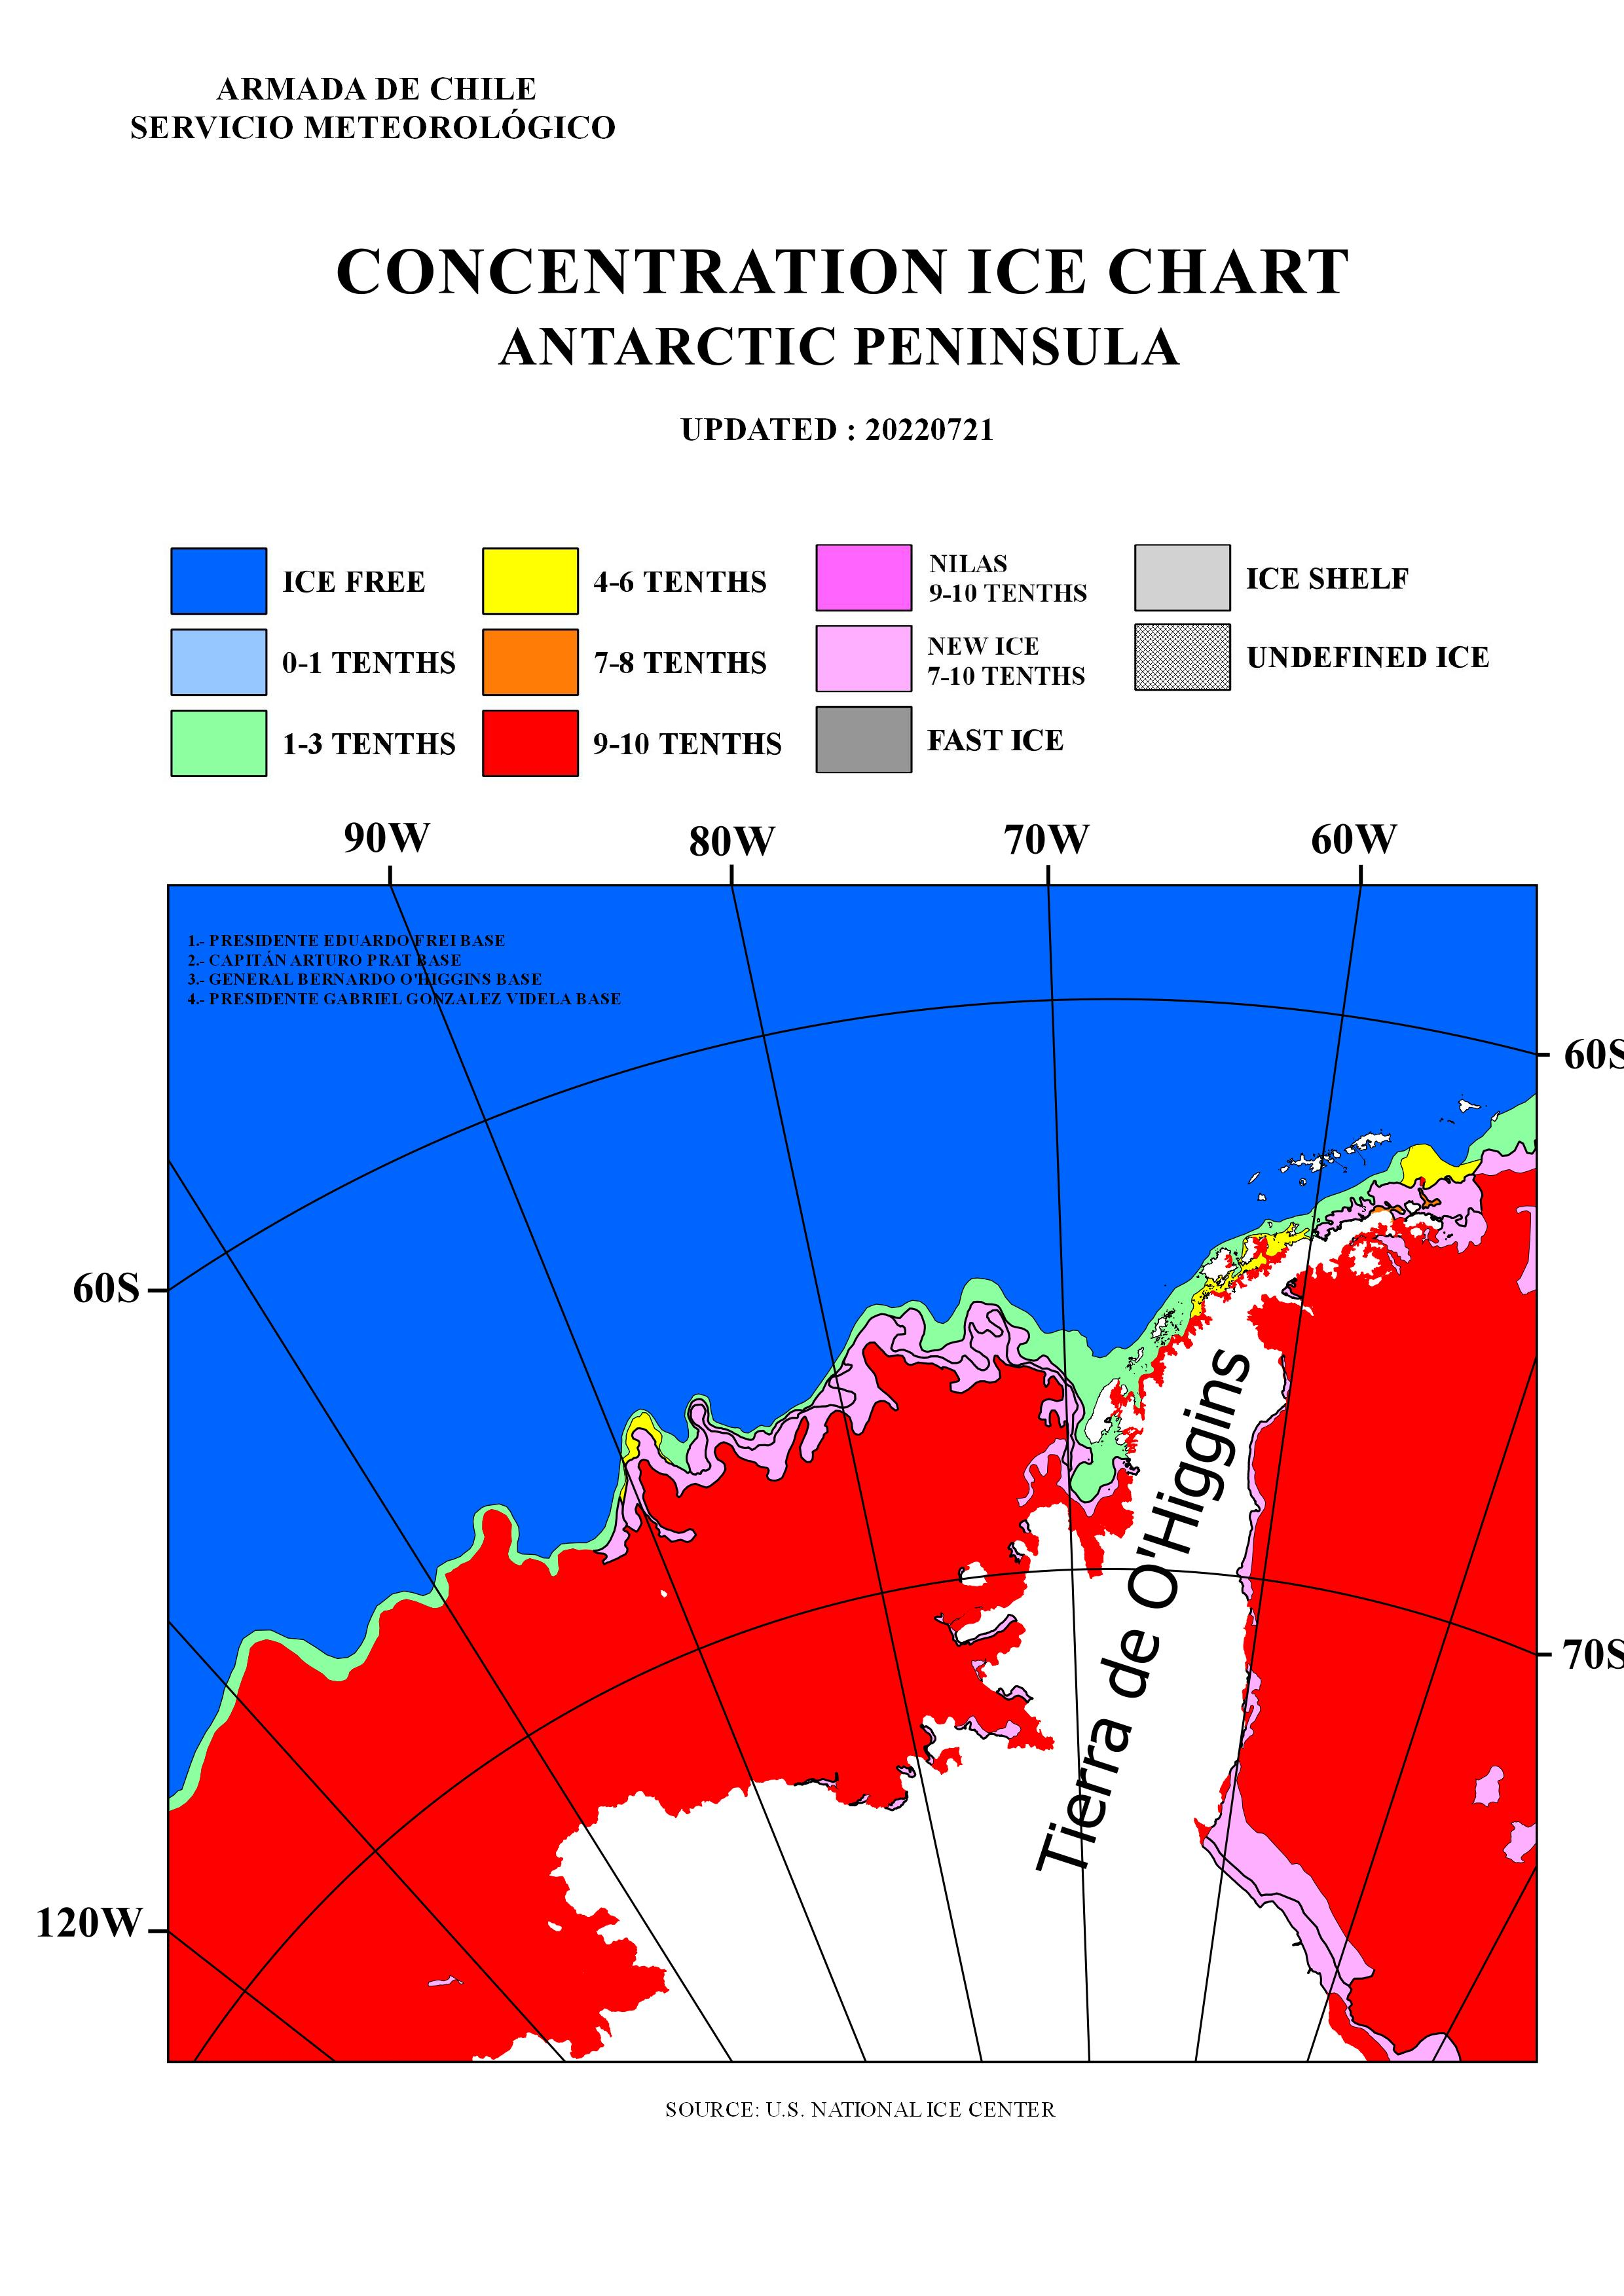 Nautical Free Charts Publications No Image Version Intranet Network Diagram Photo Album Diagrams Antarctic Penninsula Bw Sea Ice Limit Chart Concentration